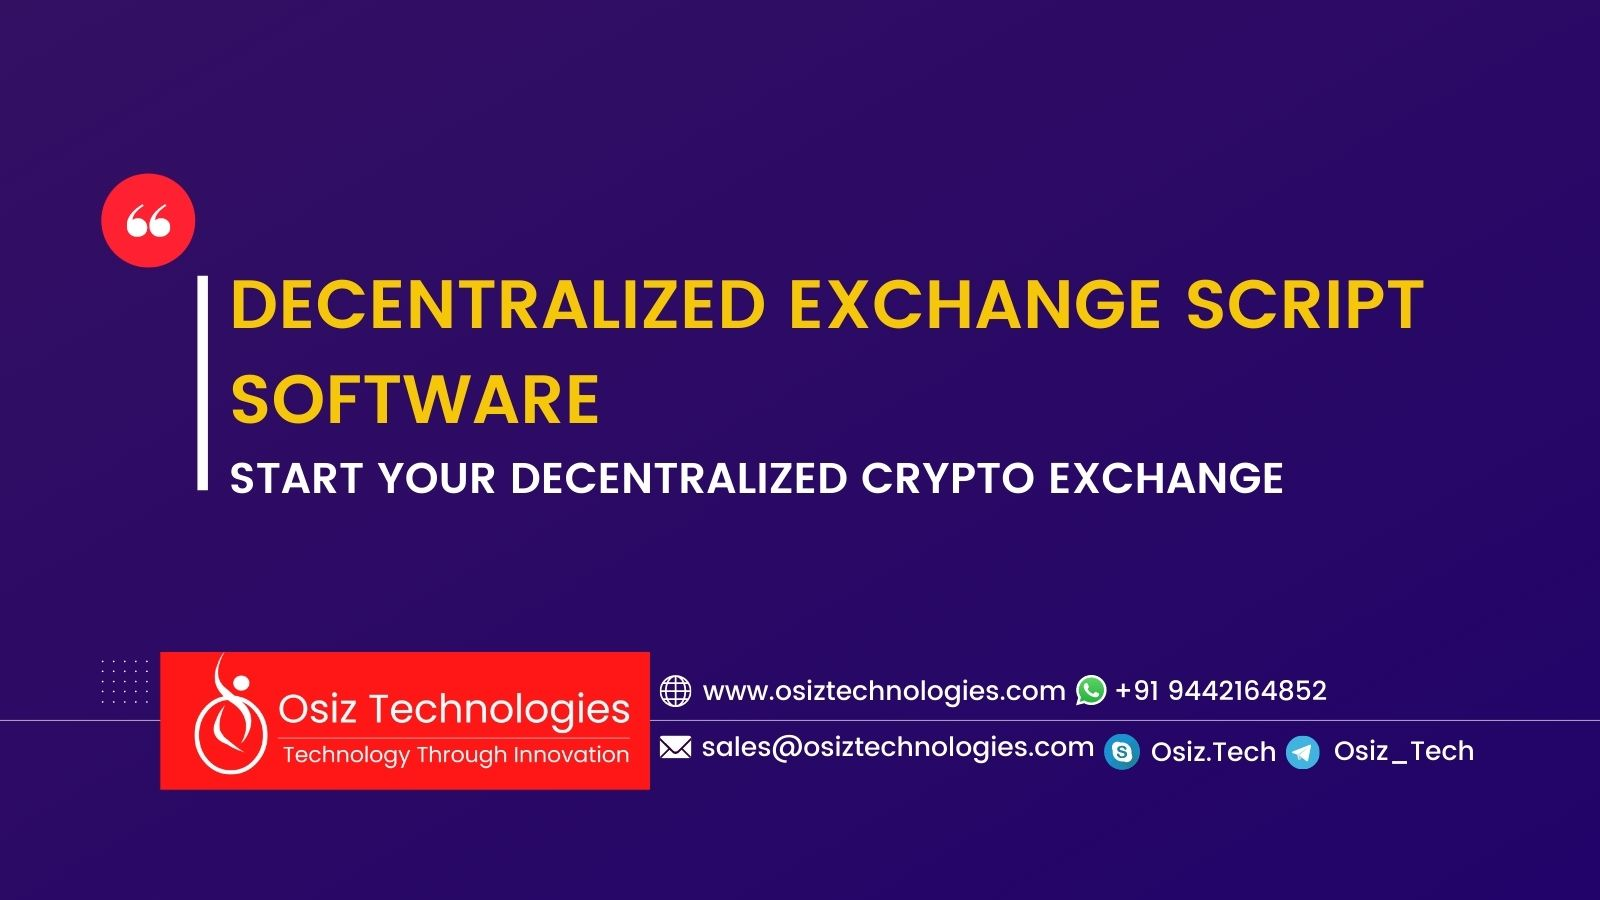 Start your Decentralized Crypto Exchange with Our 100% Multi-tested Decentralized Exchange Script Software